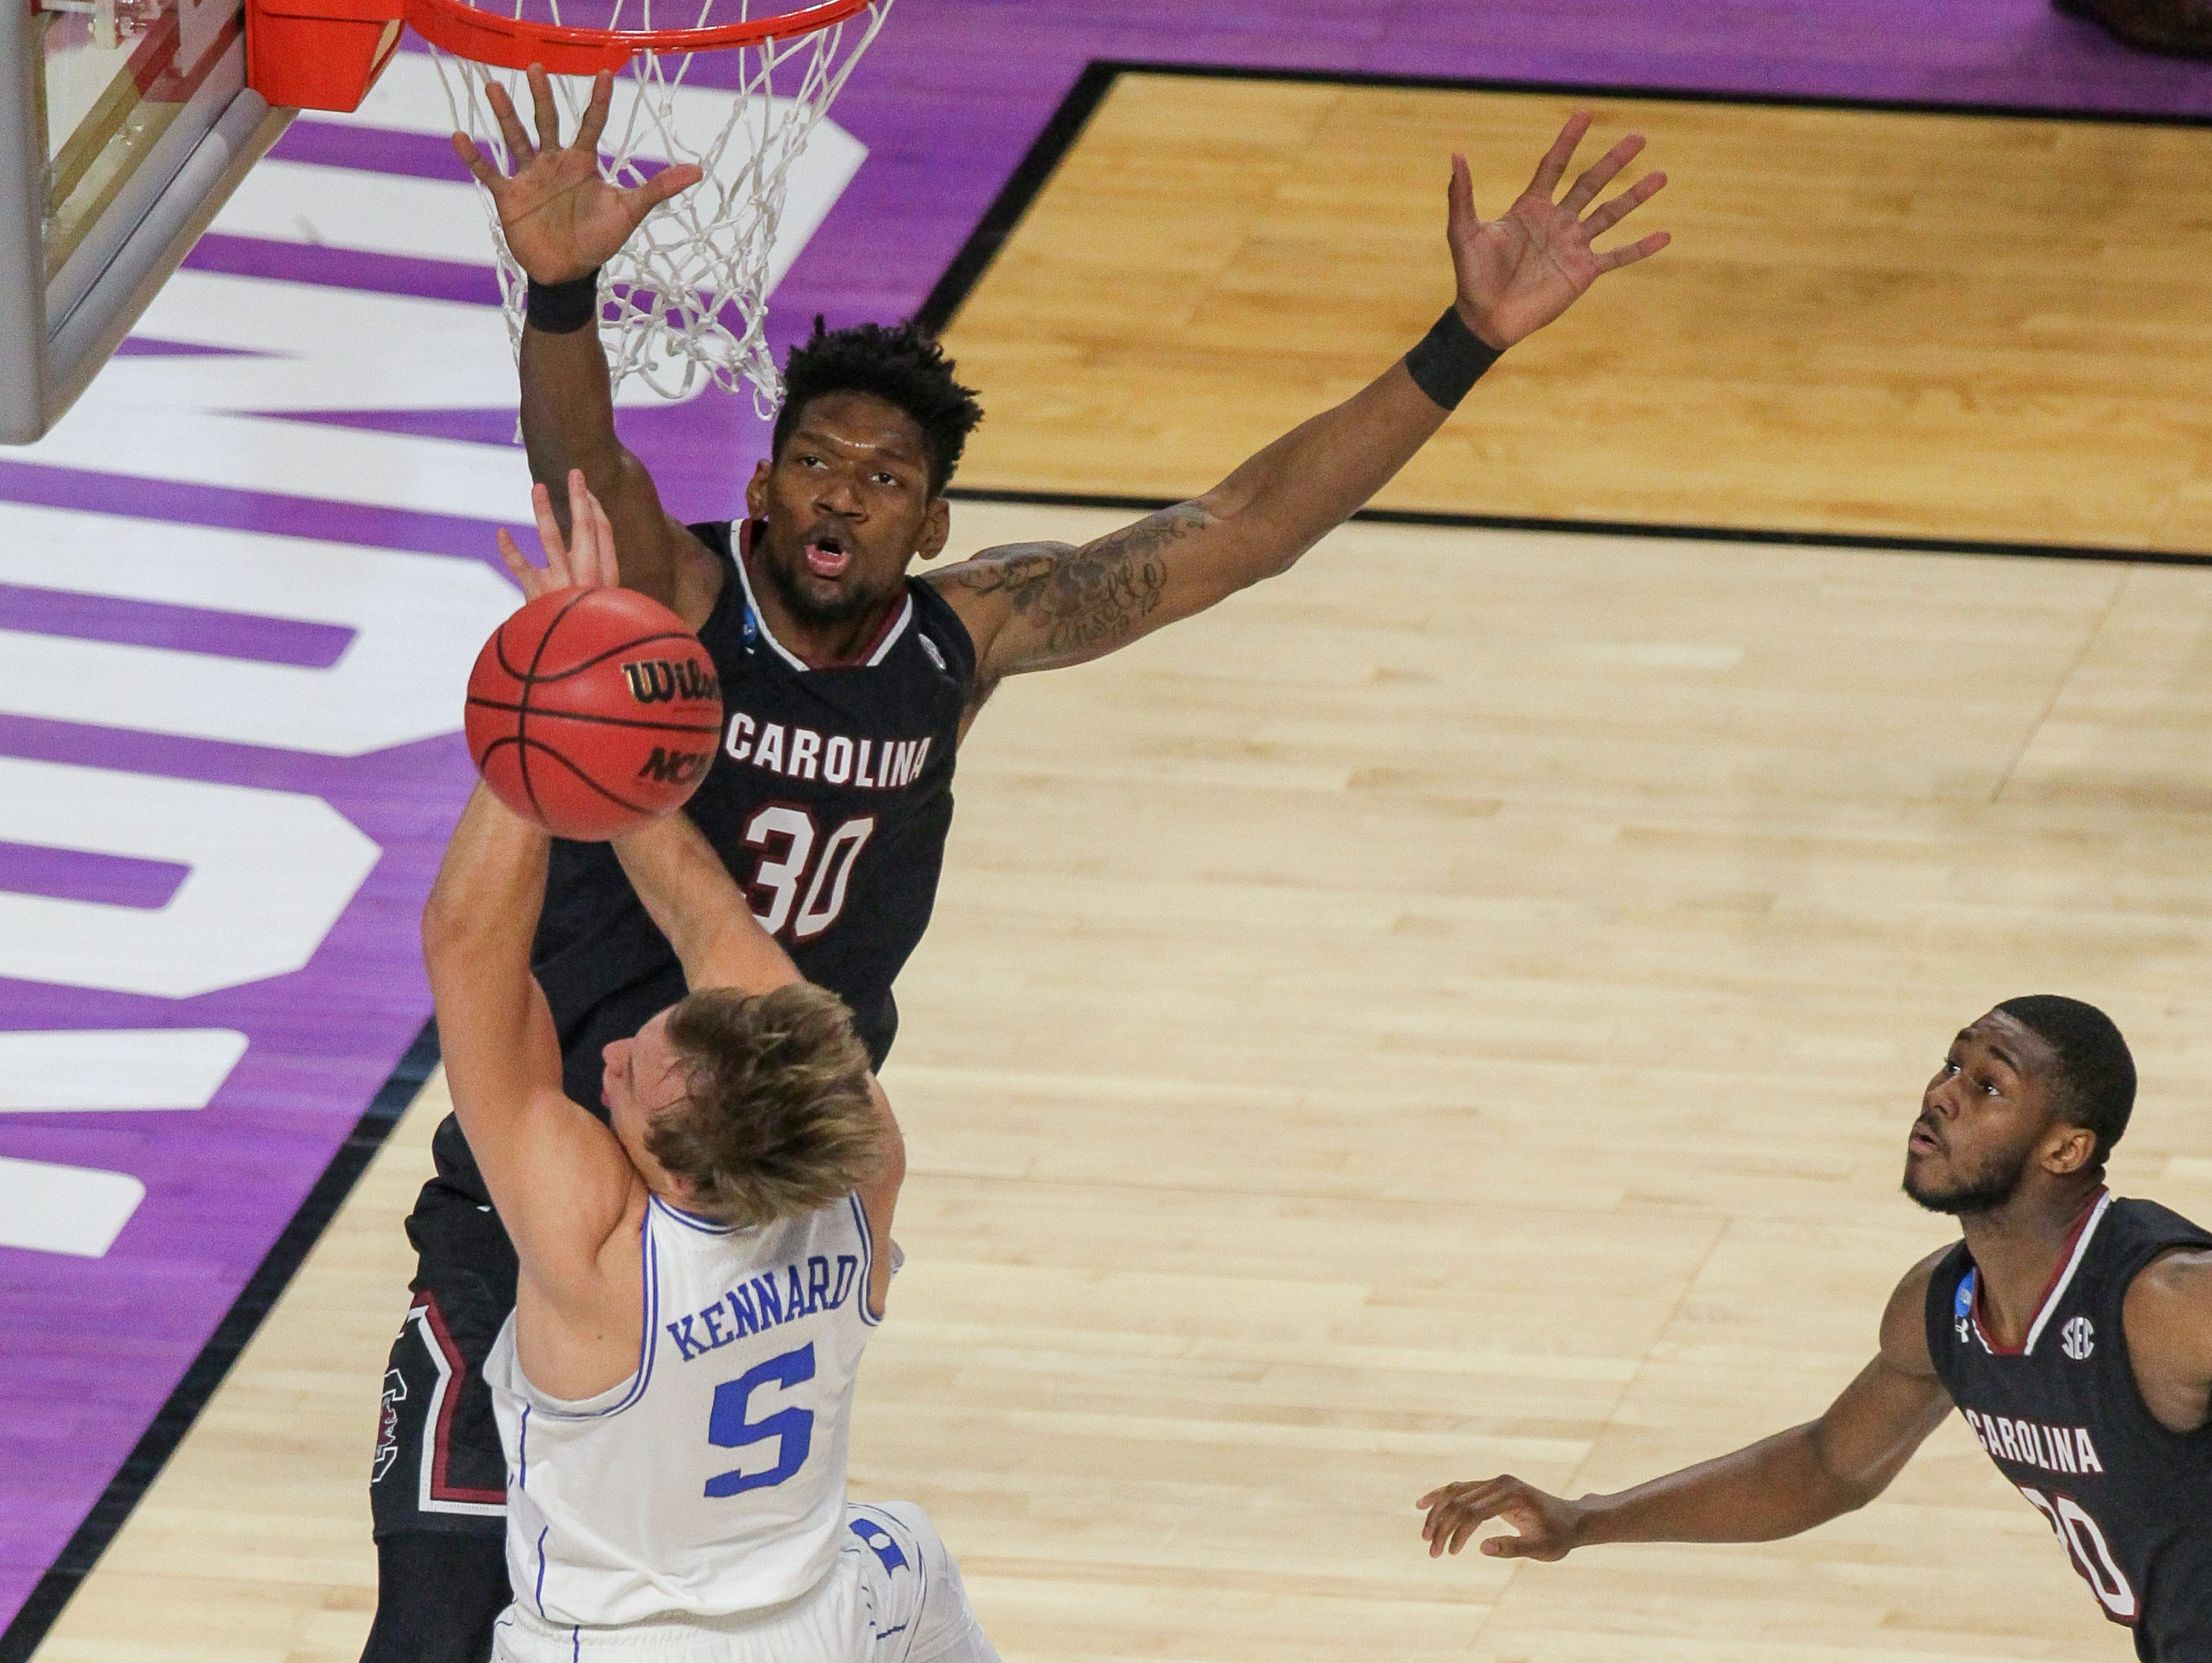 South Carolina forward Chris Silva (30) defends Duke guard Luke Kennard in the first half during the 2nd round of the NCAA Tournament at Bon Secours Wellness Arena in downtown Greenville on Sunday, March 19, 2017.